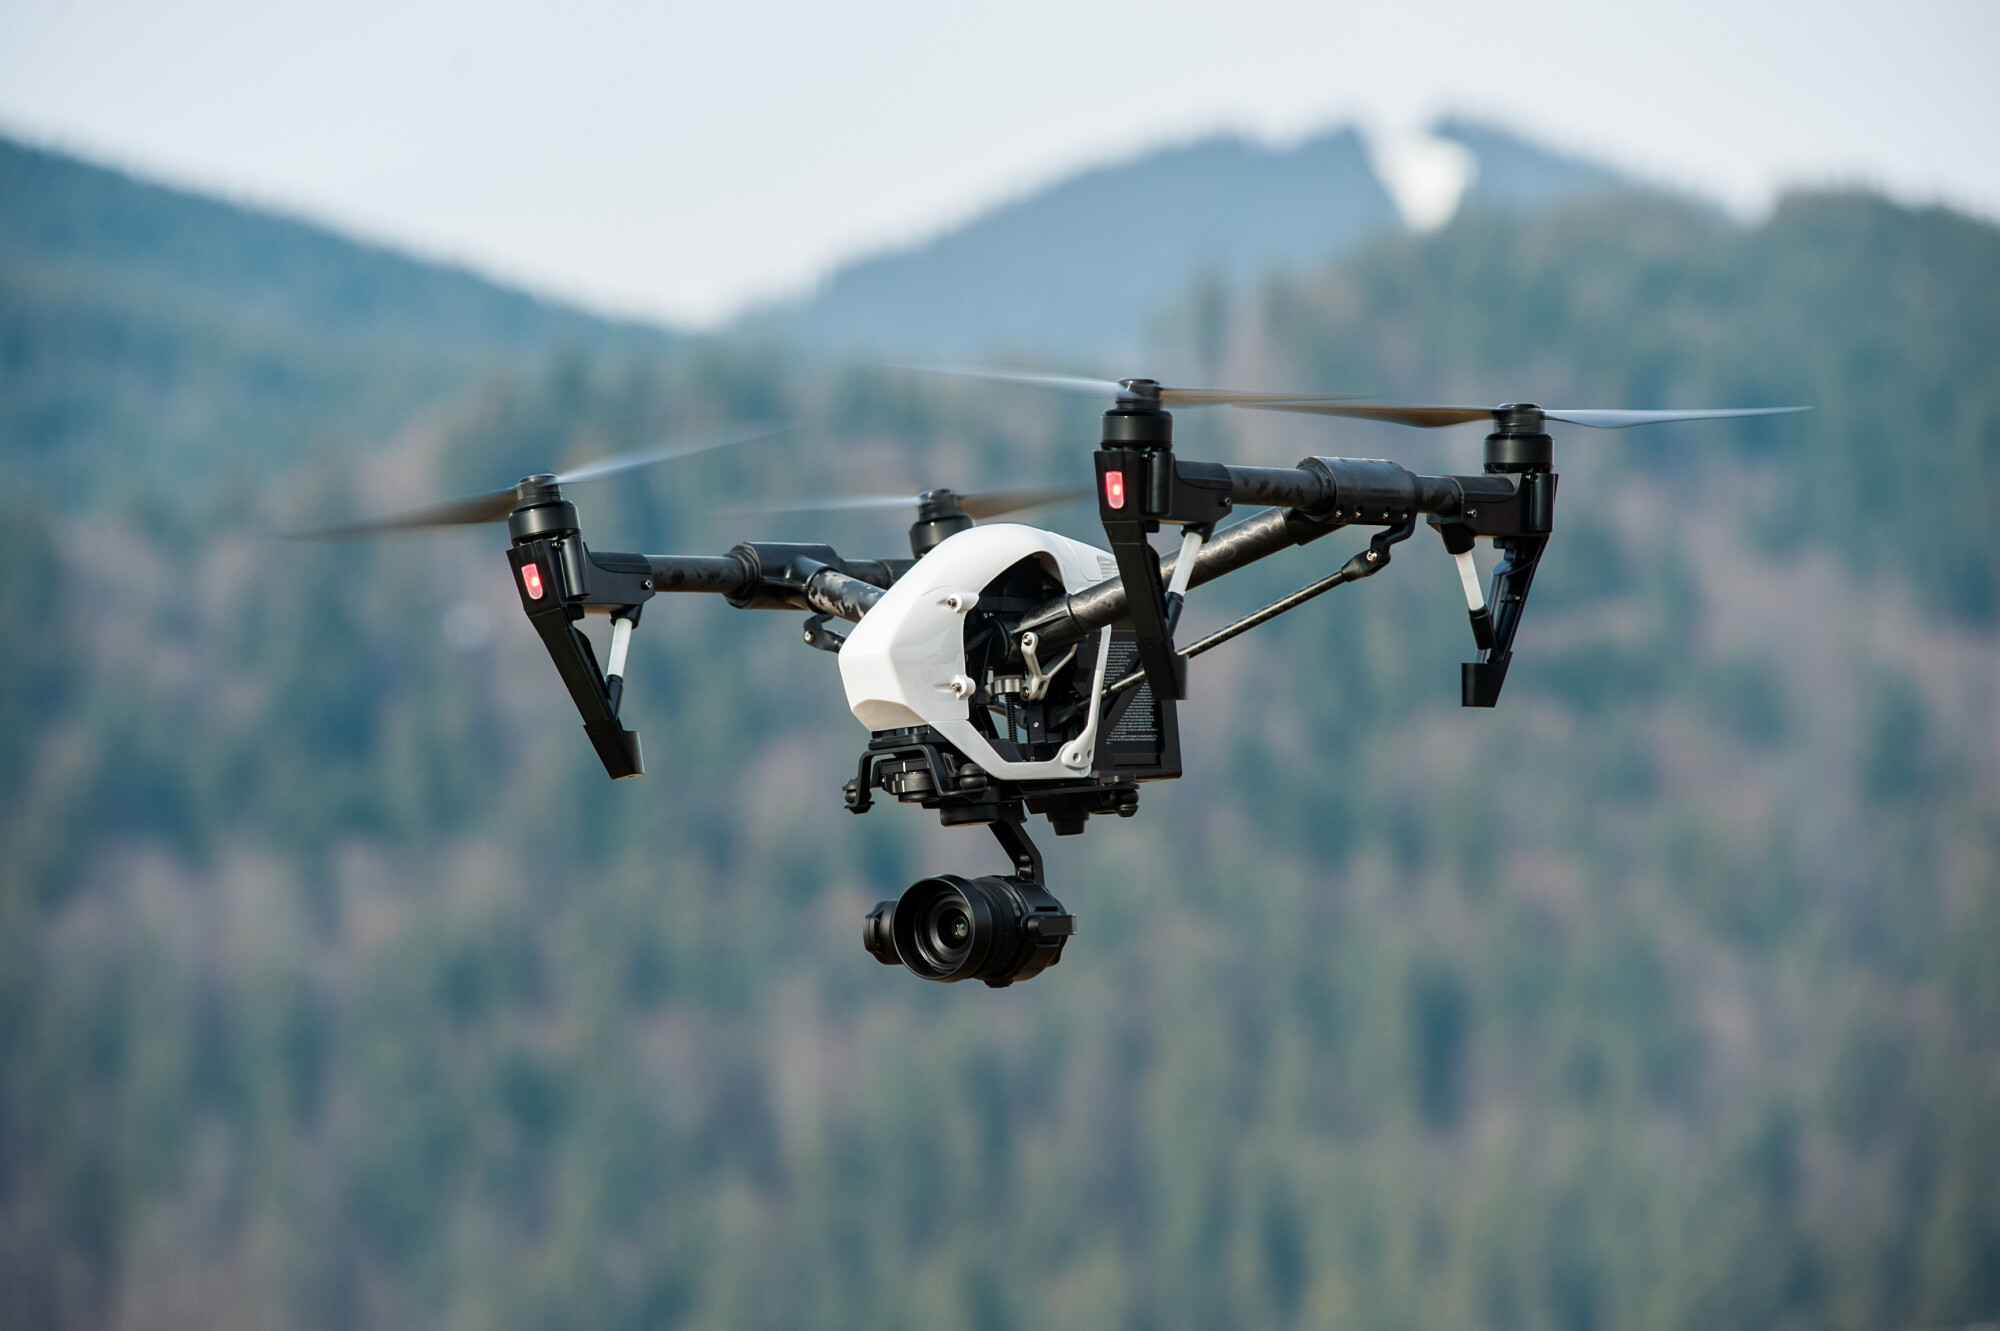 There are several things you need to do in order to prevent drone crashes. Our informative guide here has some great tips.